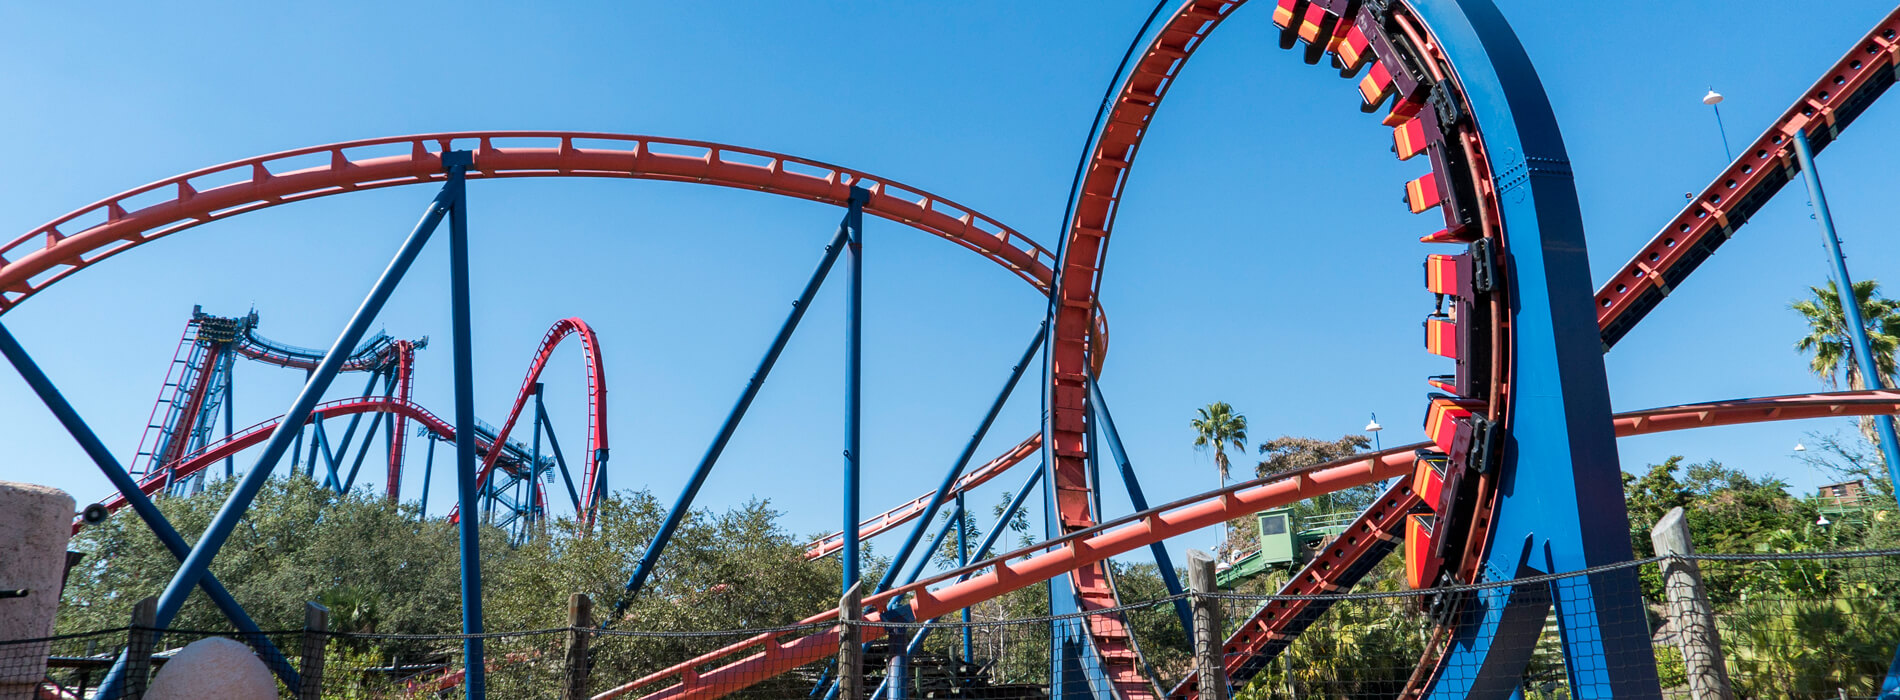 Scorpion steel roller coaster, a red ride at Busch Gardens Tampa Bay, located in Florida